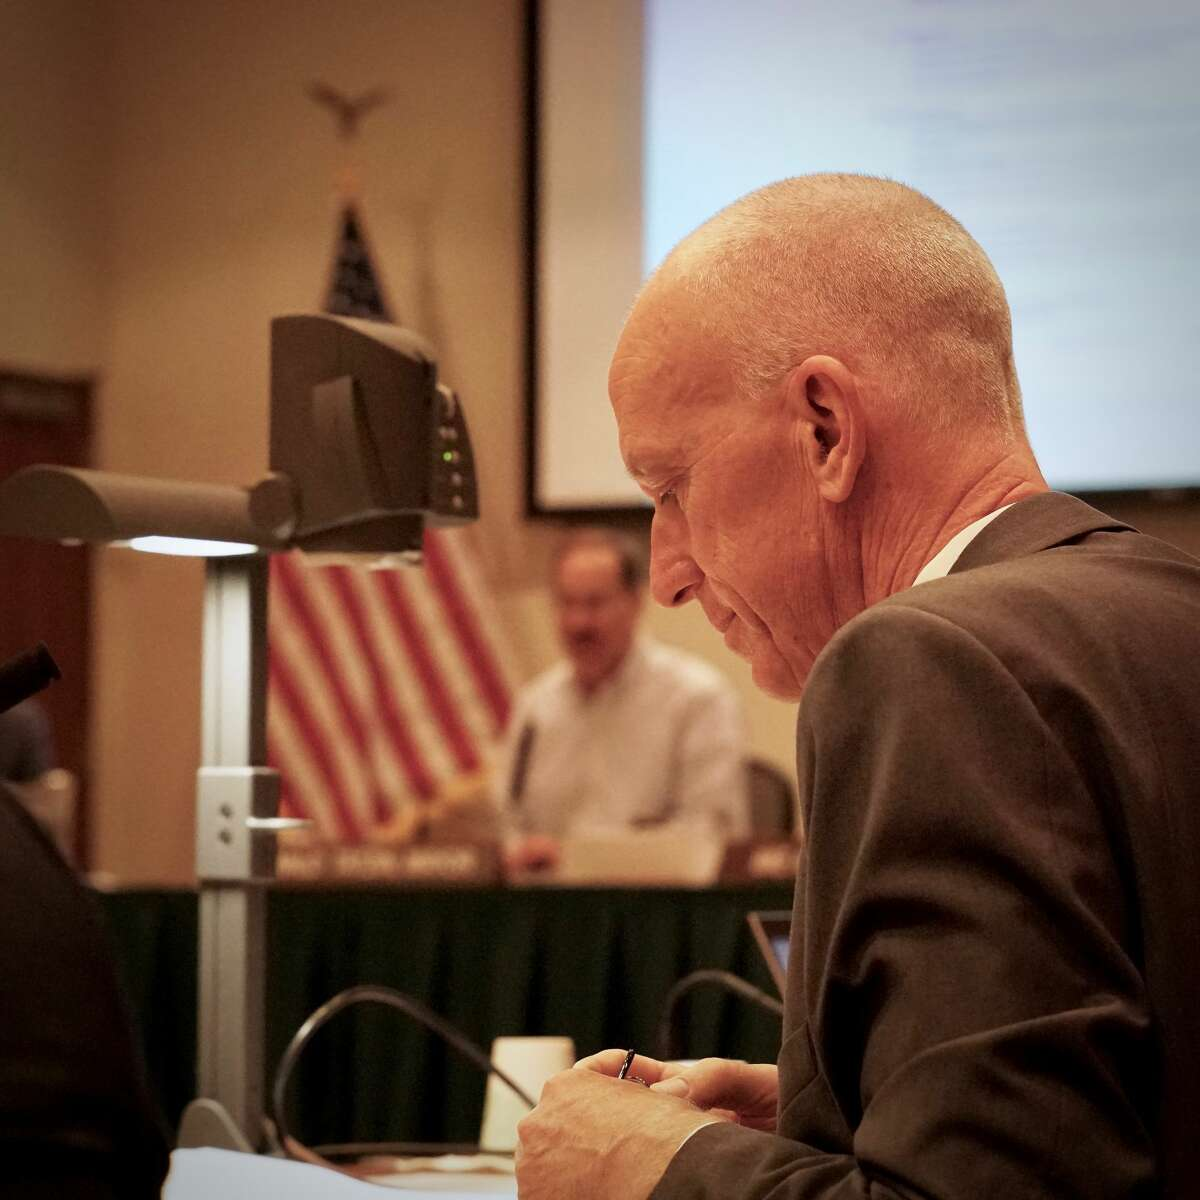 Longtime Lafayette city manager Steven Falk announced his resignation at a City Council meeting this week. He will step down at the end of the year.